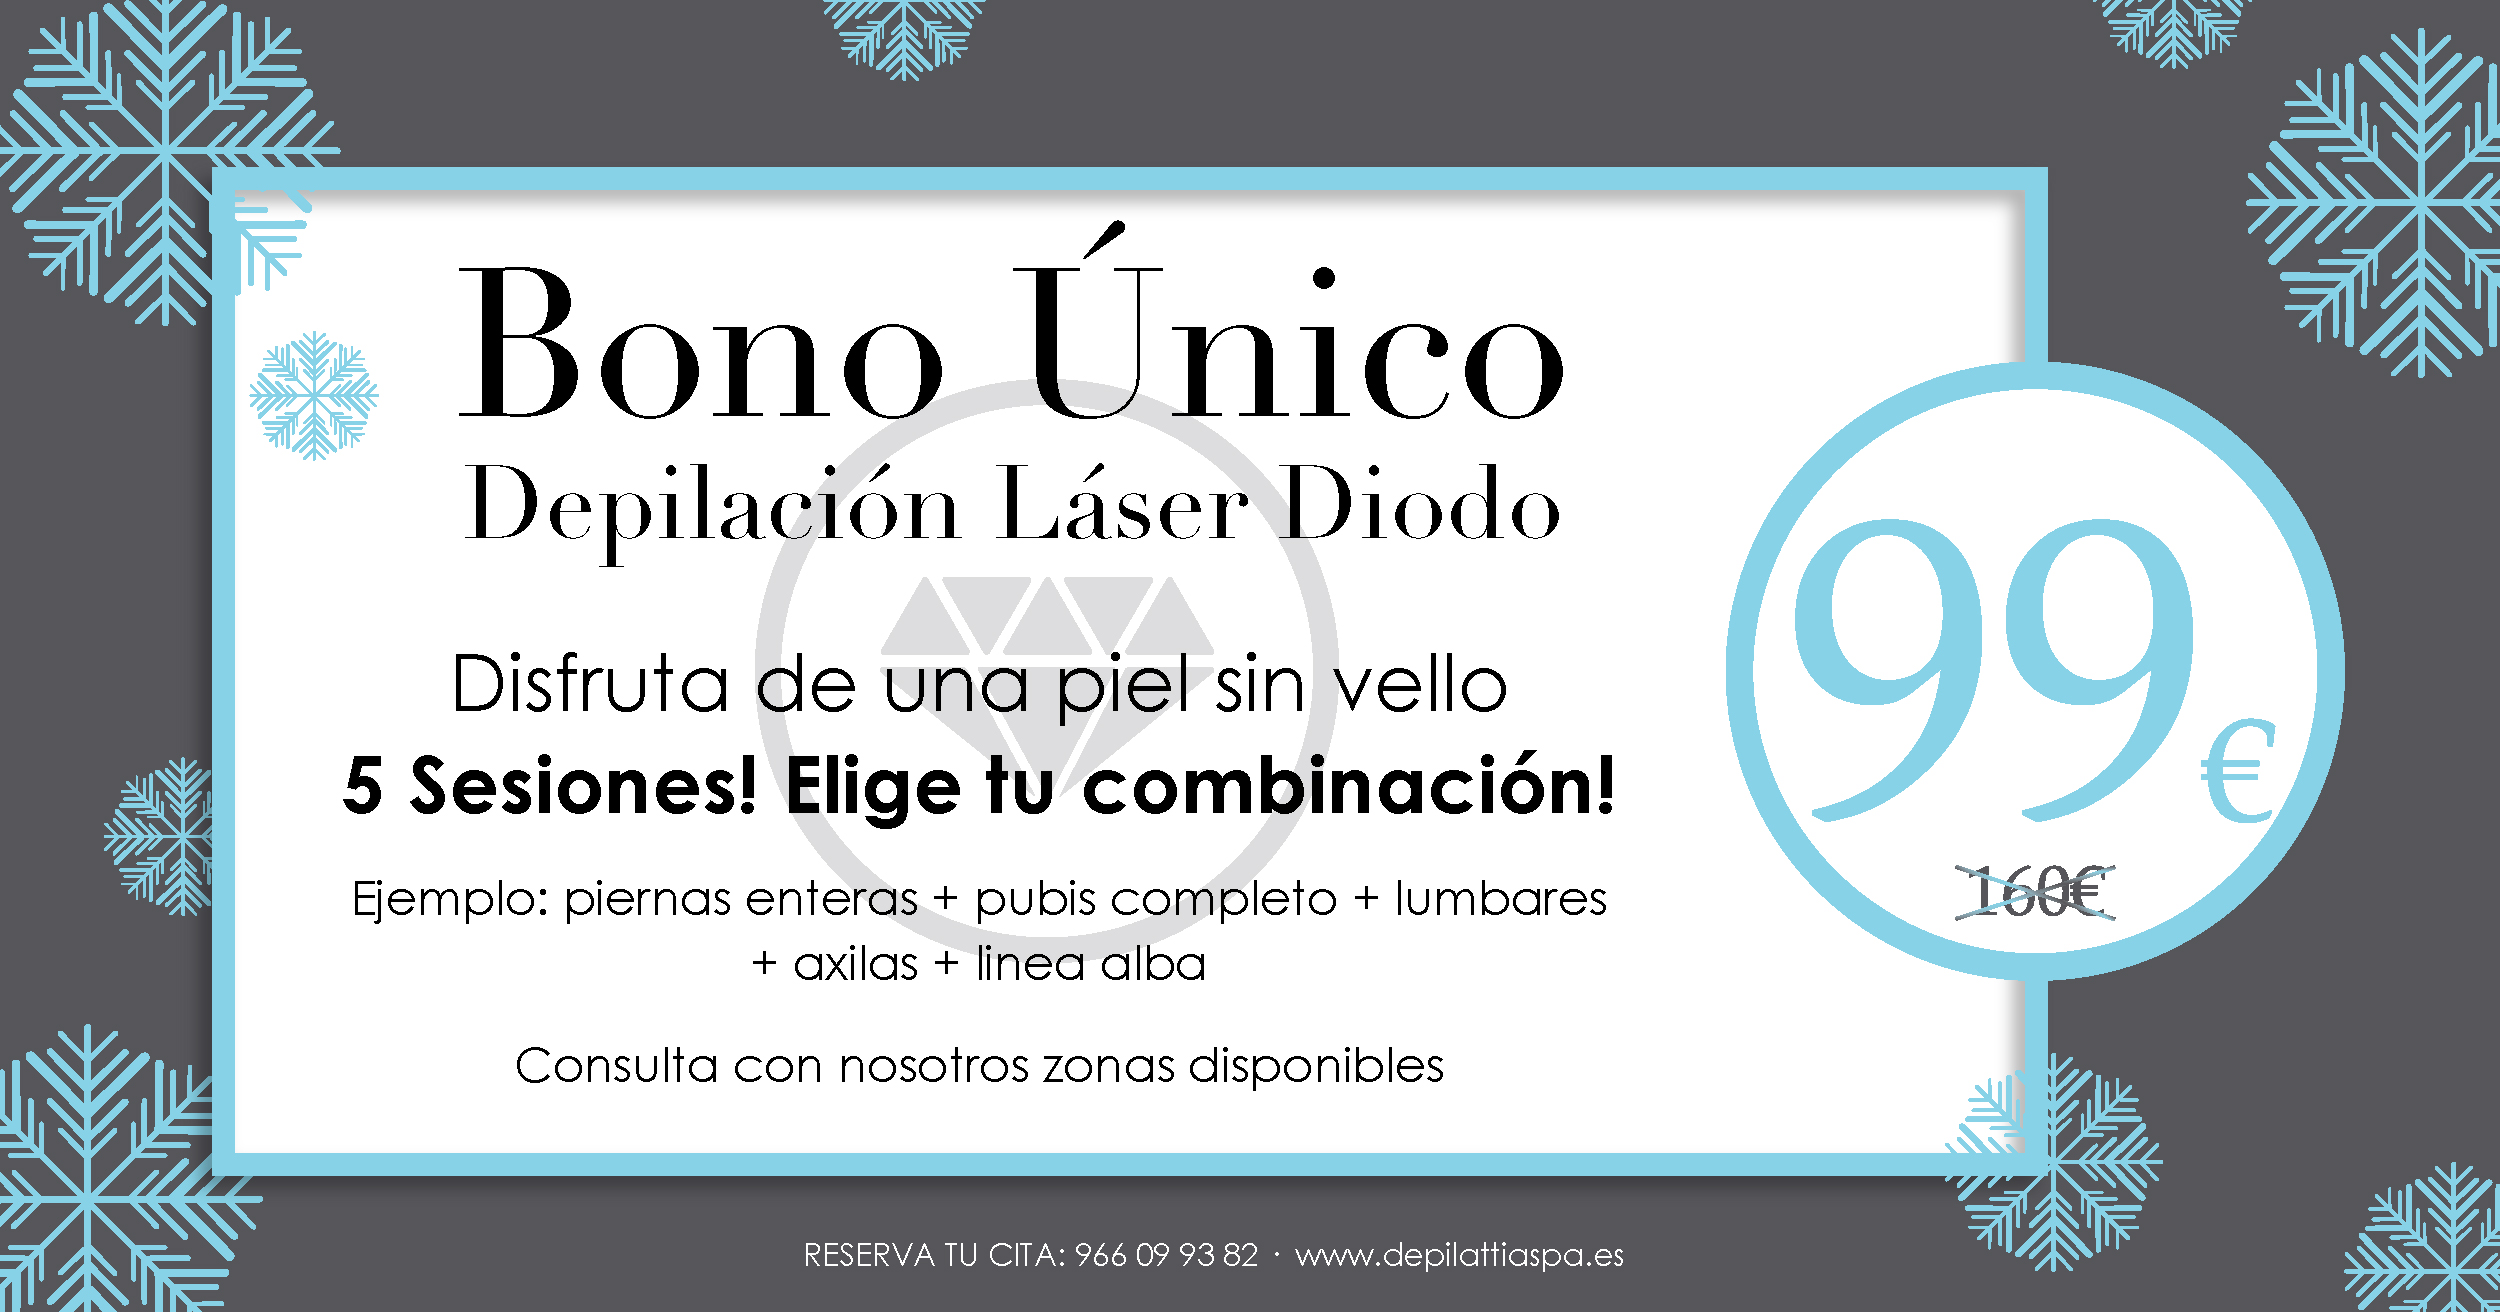 bono-unico-depilattia-spa-elche-2_Facebook-post